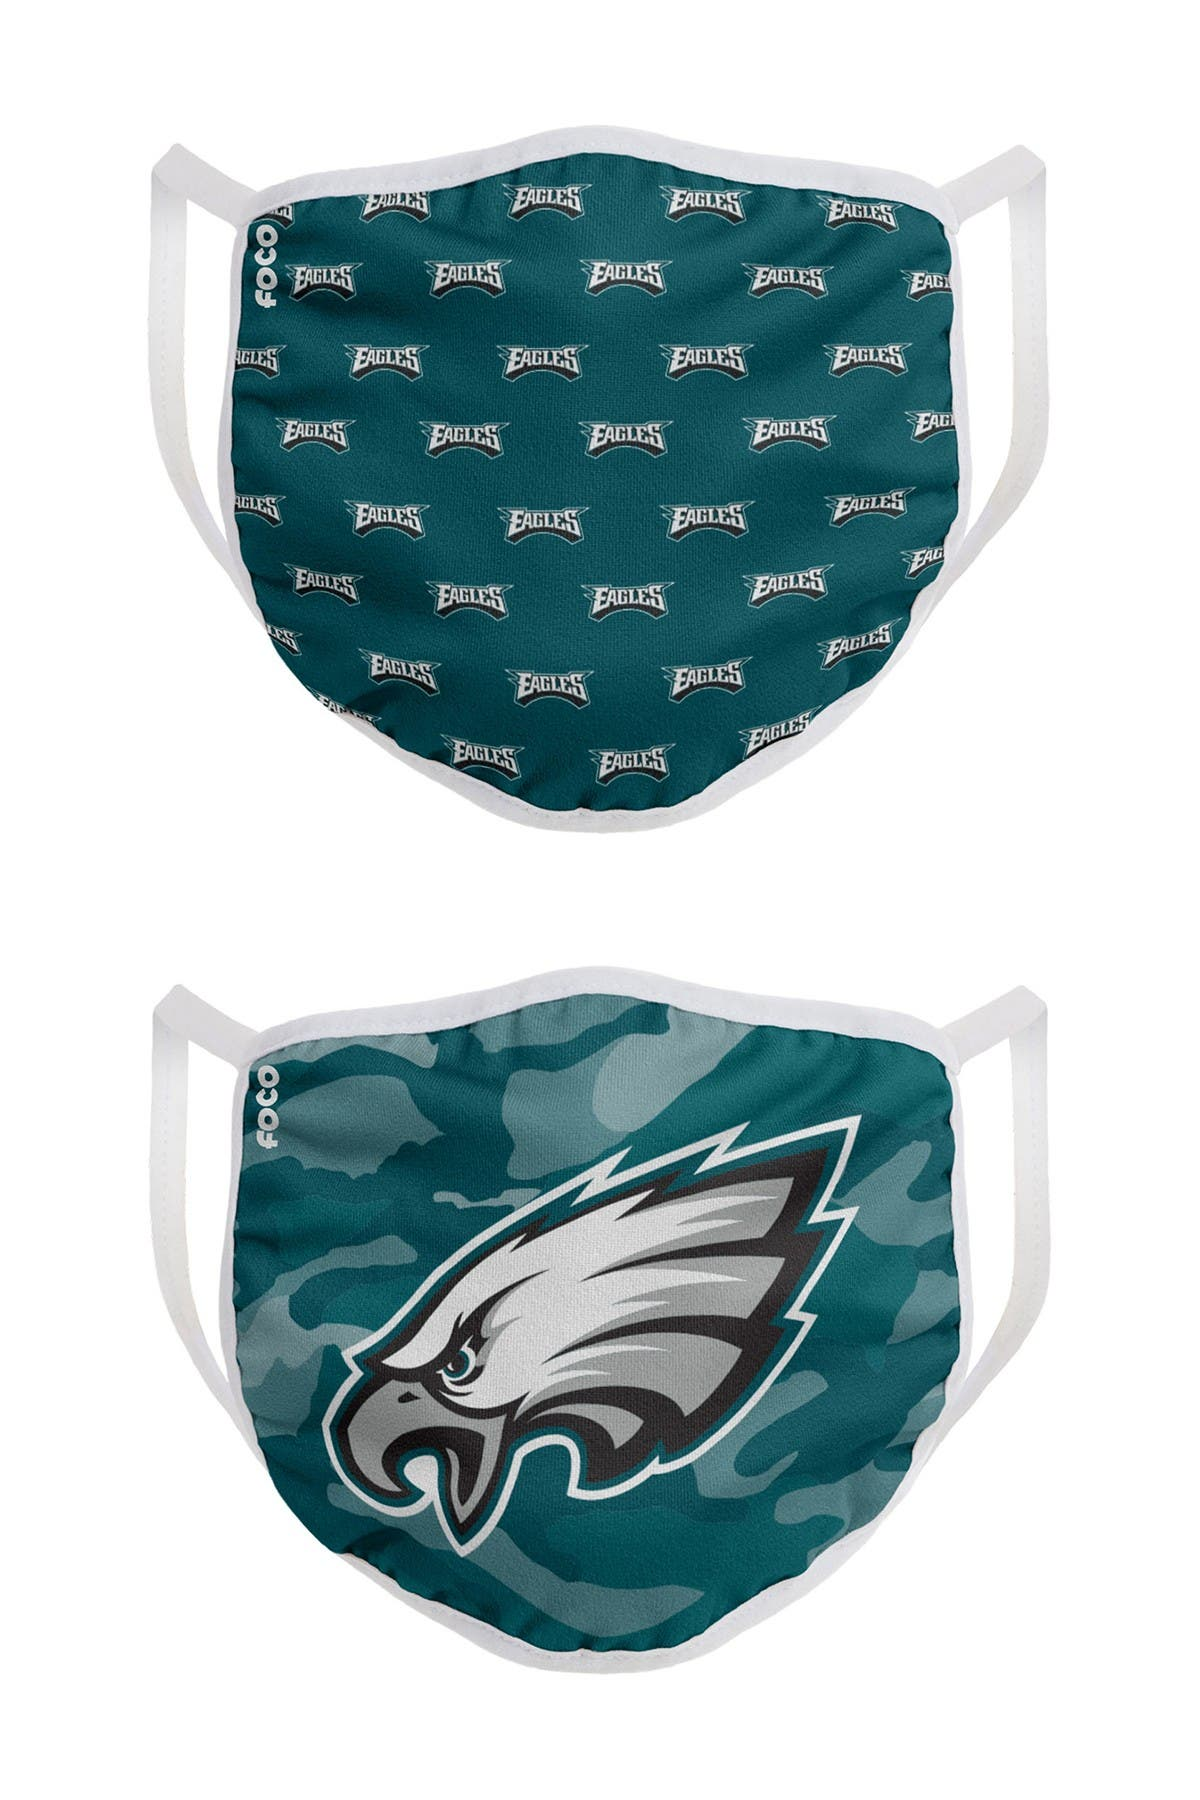 Image of FOCO NFL Philadelphia Eagles Clutch Printed Face Cover - Pack of 2